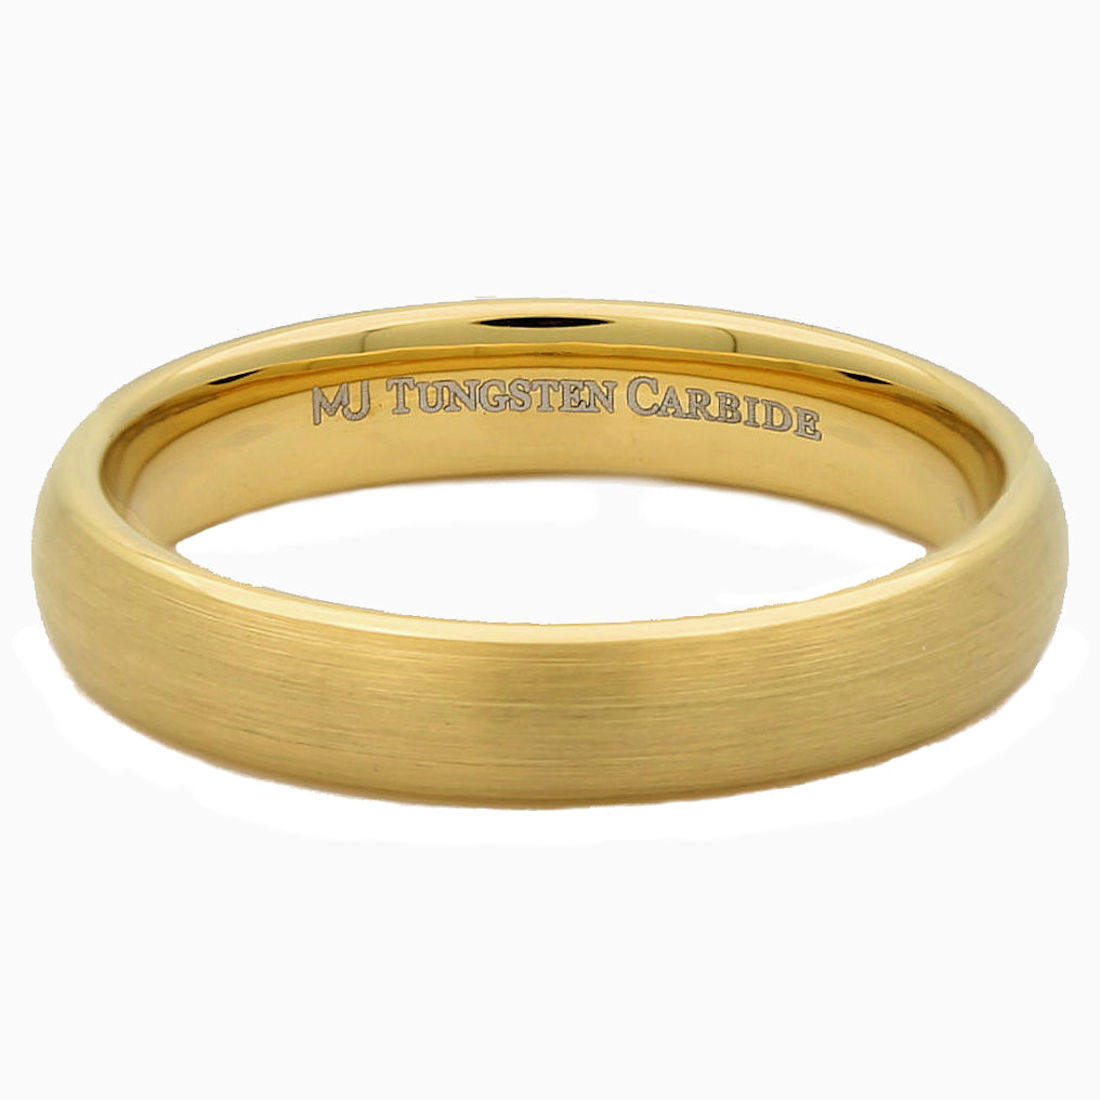 4mm-or-6mm-Gold-Plated-Brushed-Tungsten-Carbide-Wedding-Ring-Half-Dome-Band thumbnail 8